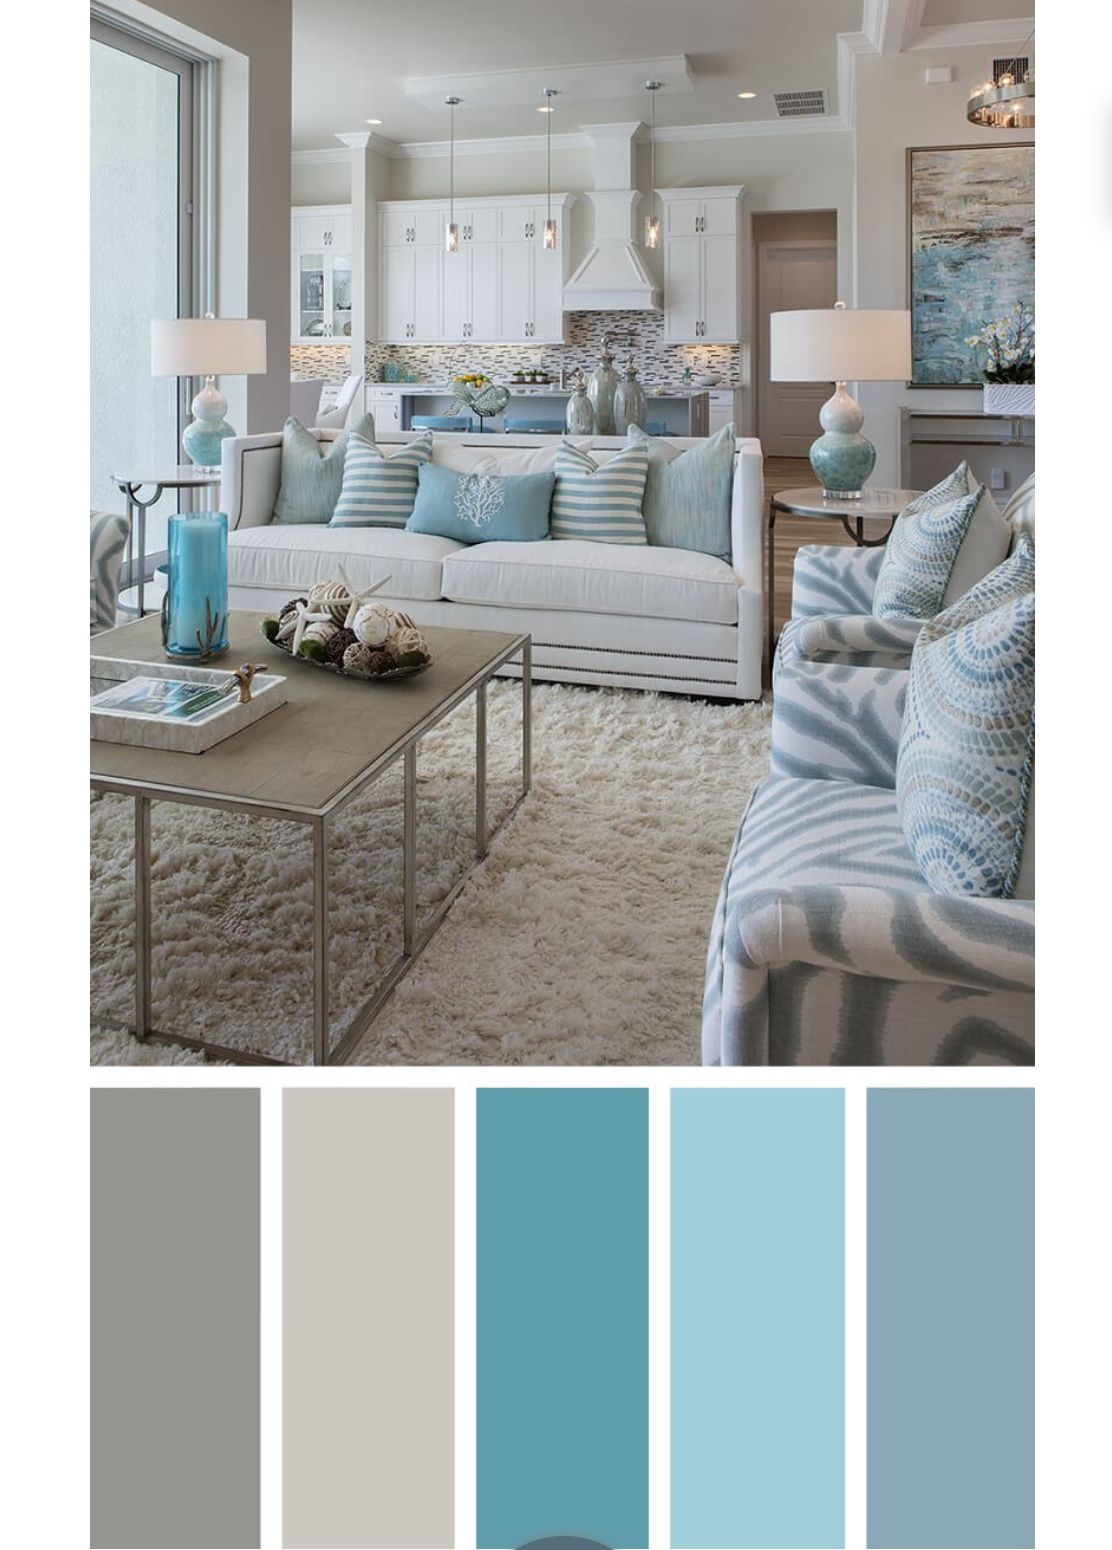 Colour scheme kitchen dining colors in 2019 room color - Kitchen living room color combinations ...